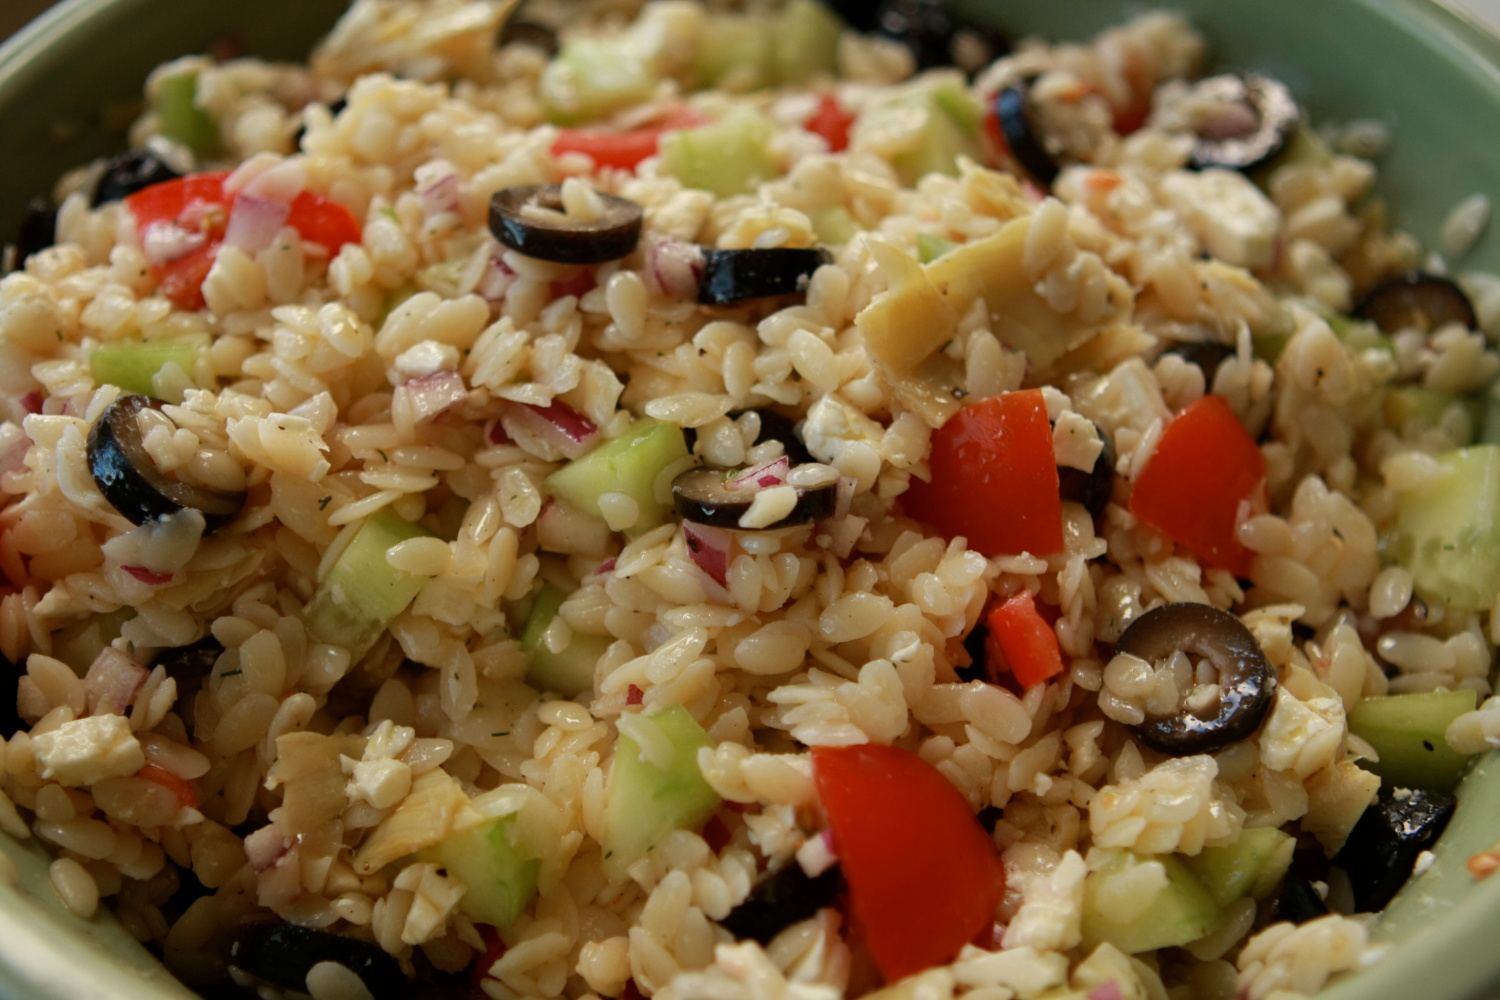 orzo salad rr greek orzo salad orzo greek salad cover greek orzo salad ...